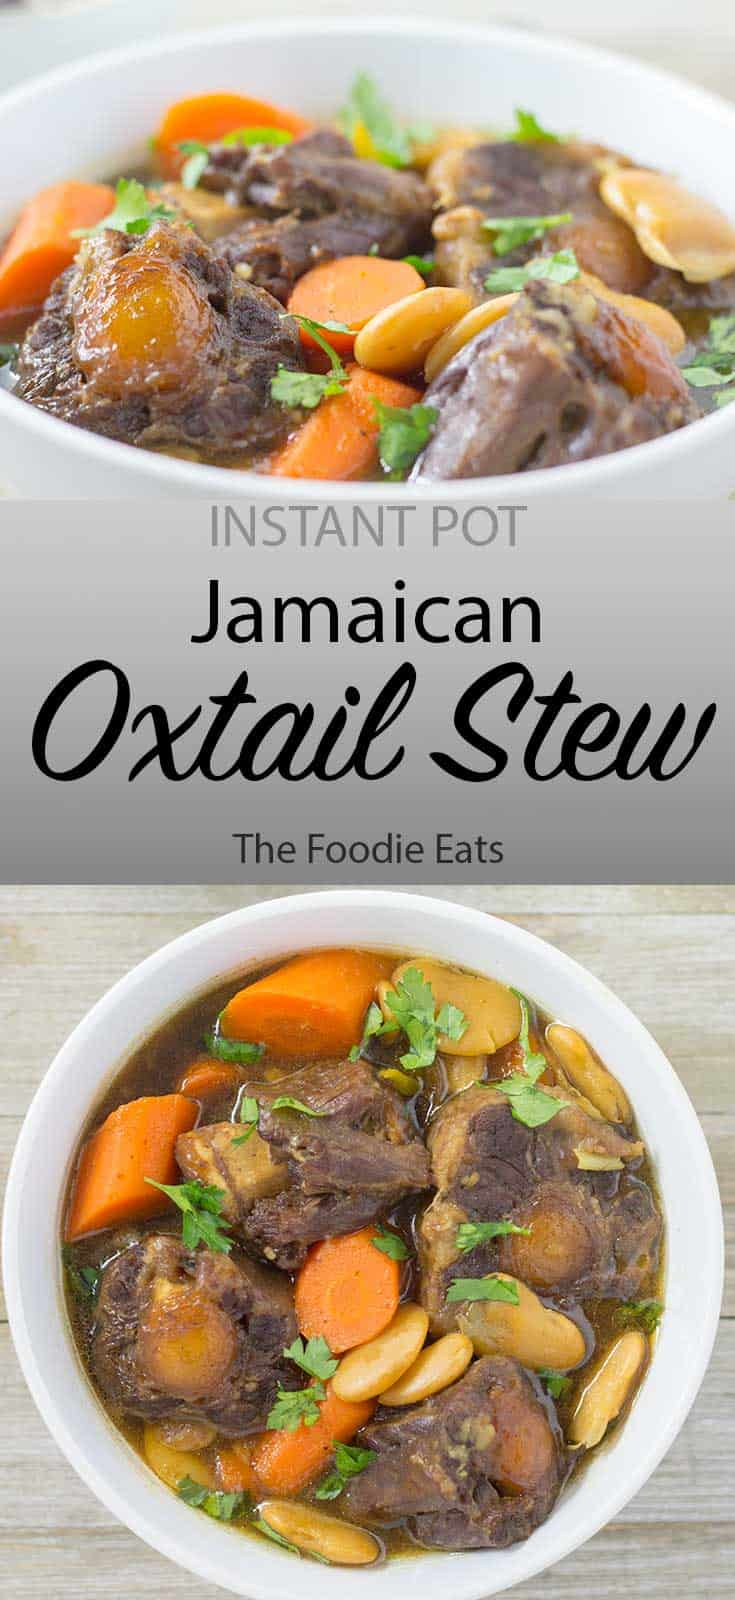 Pressure Cooker Oxtail Stew - image for Pinterest | The Foodie Eats